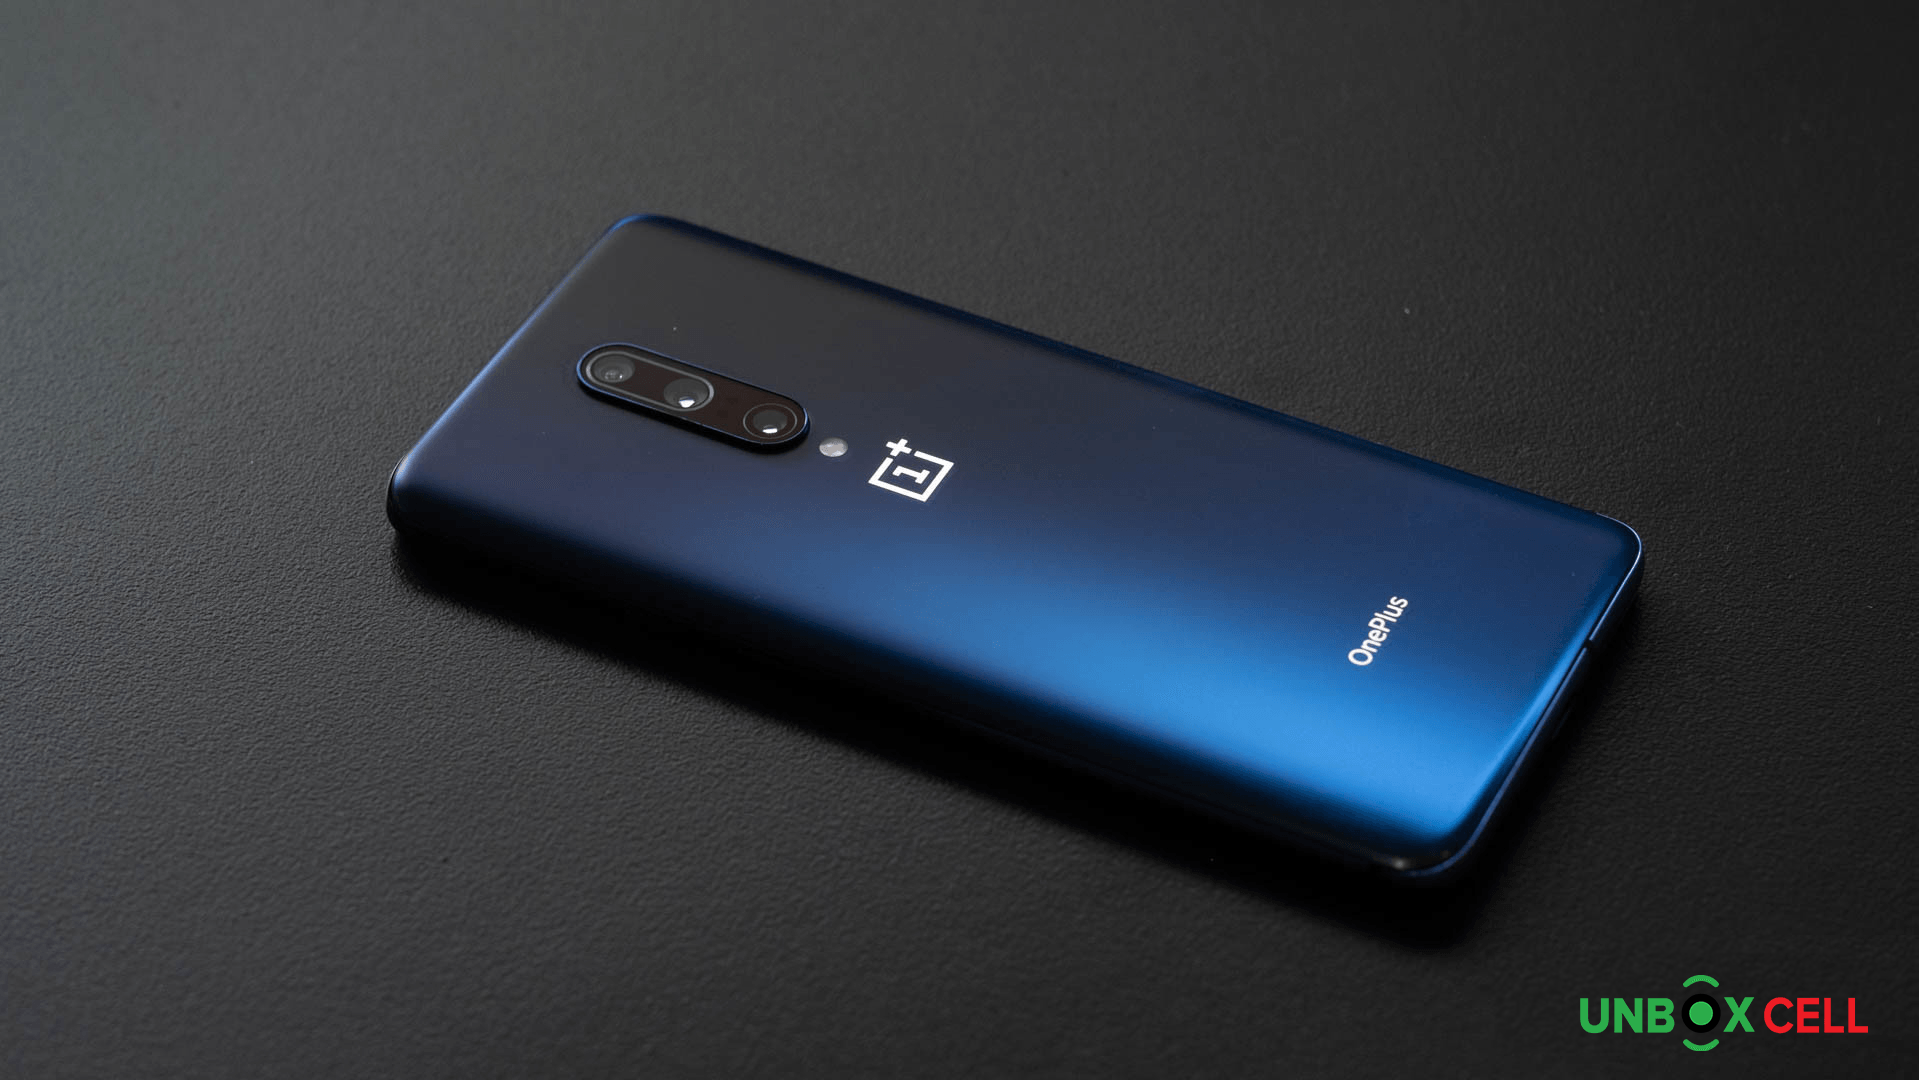 OnePlus 7 Pro- unbox cell